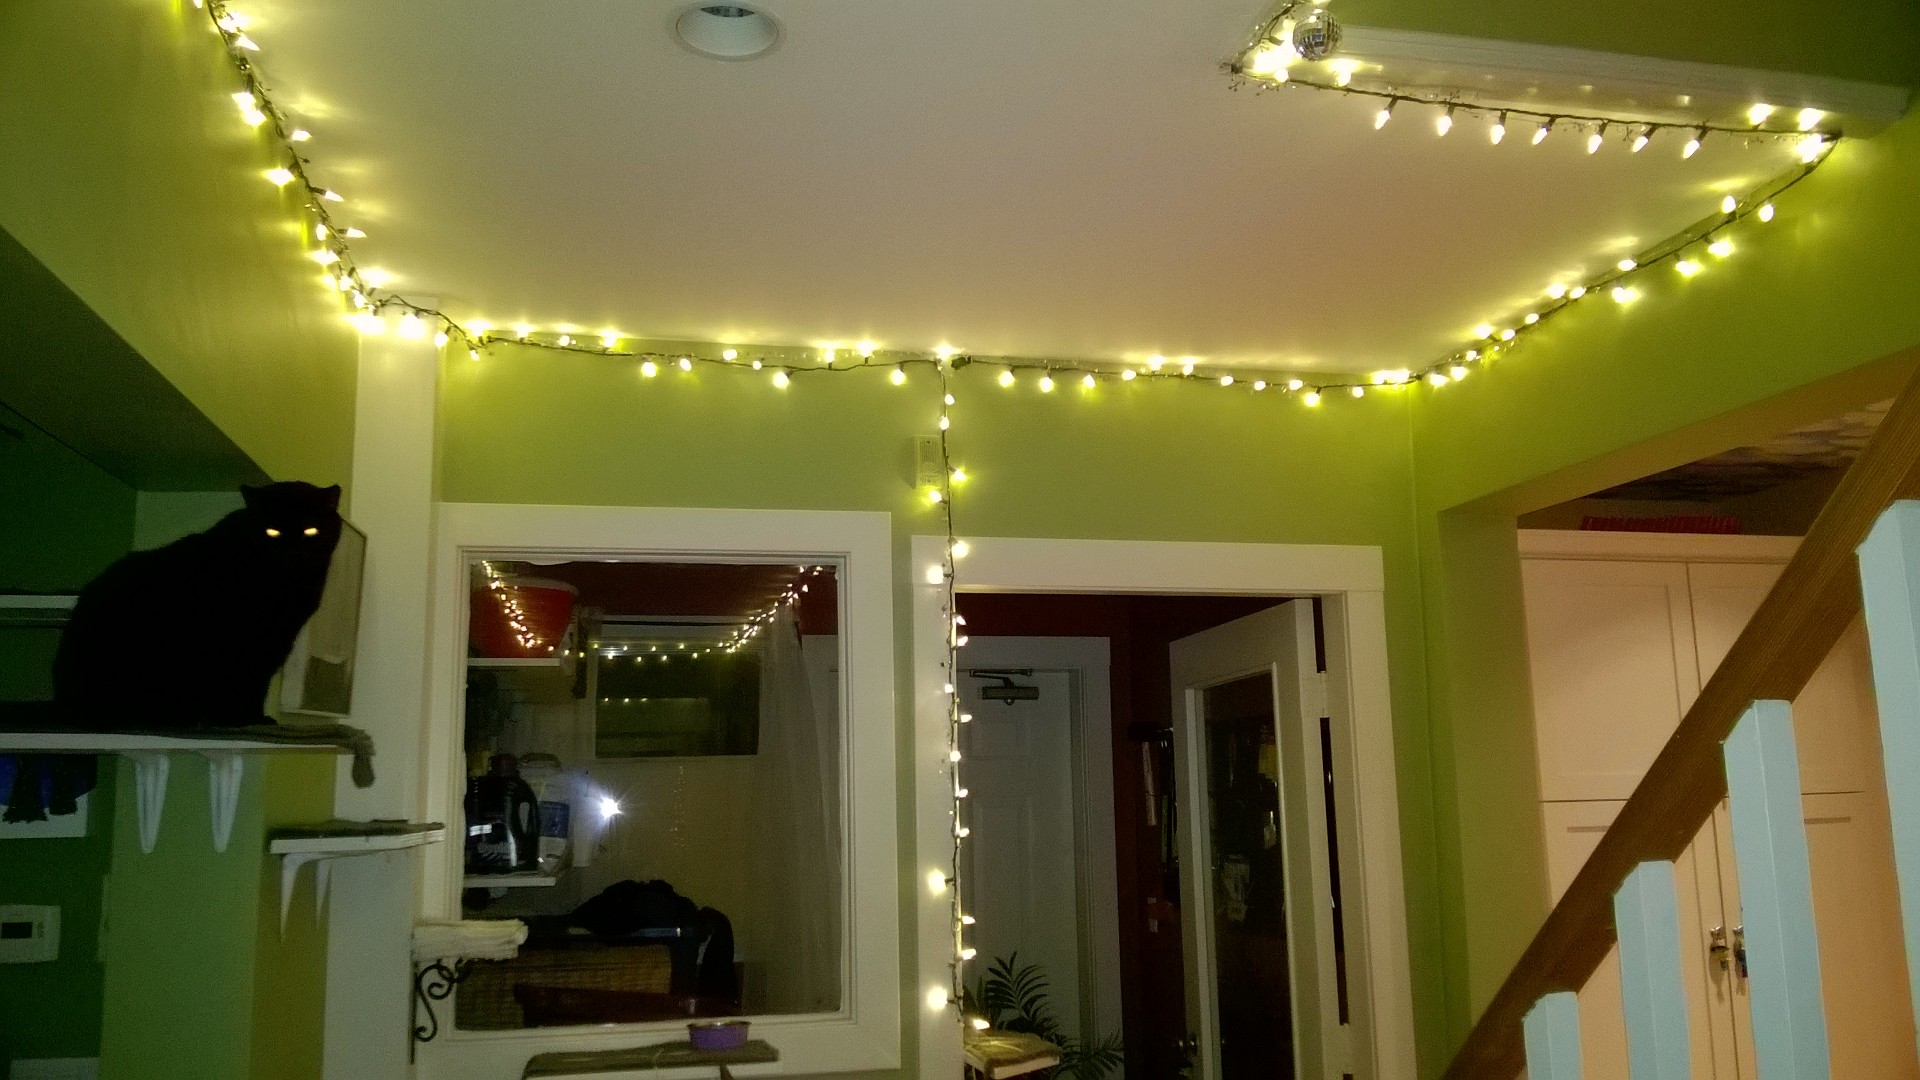 I Festived Up the House!